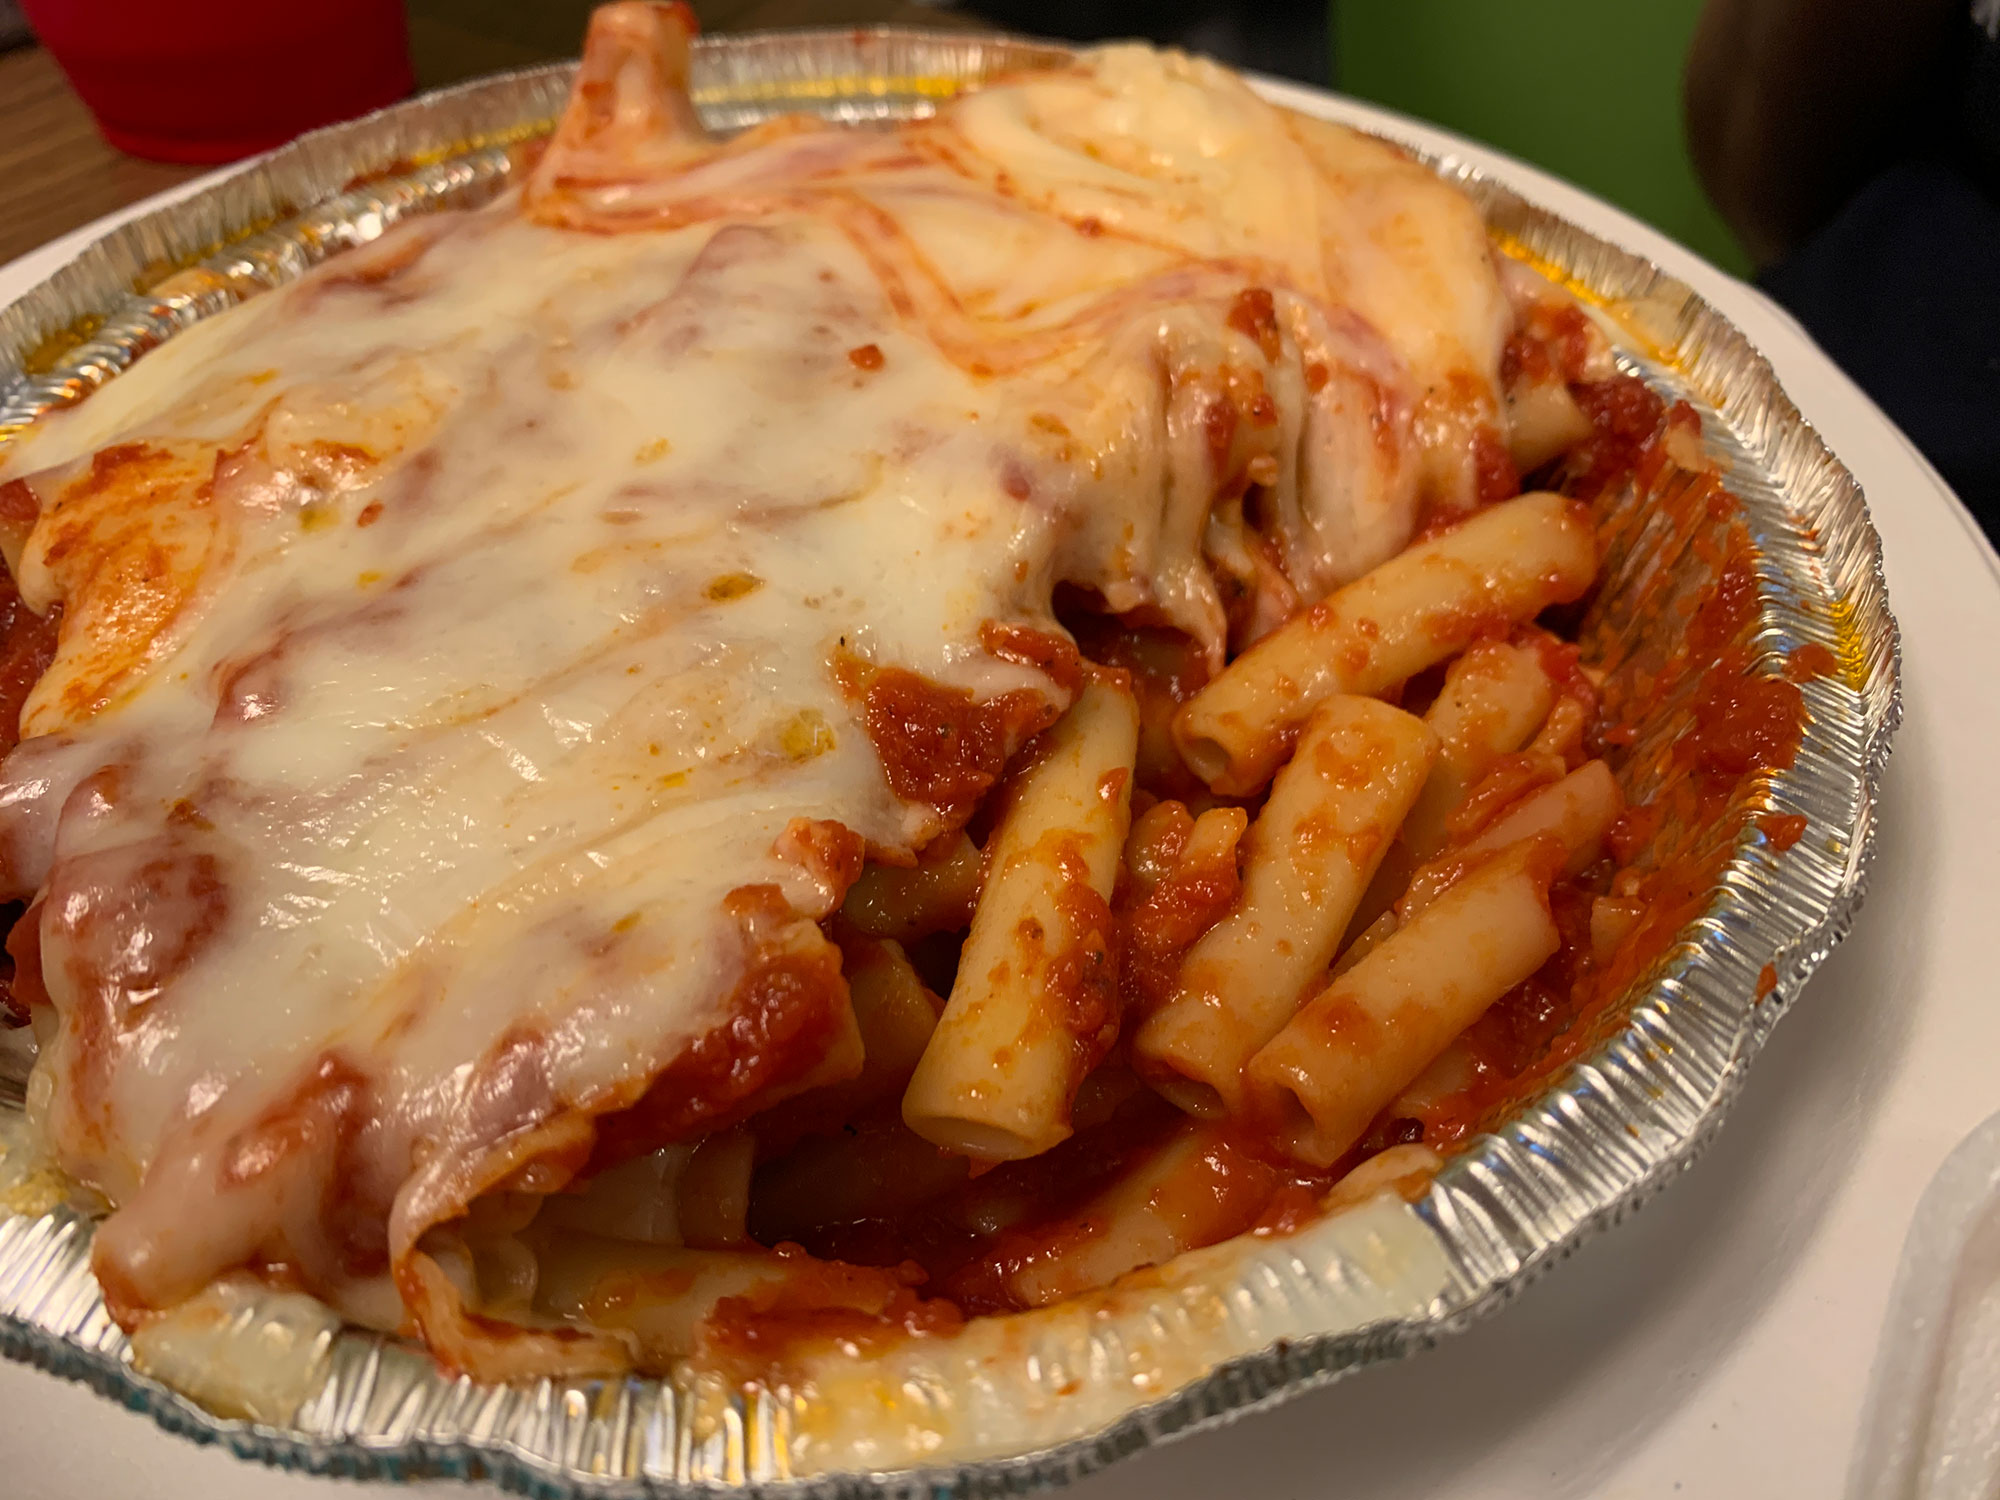 A round foil to-go container with baked ziti topped with cheese.